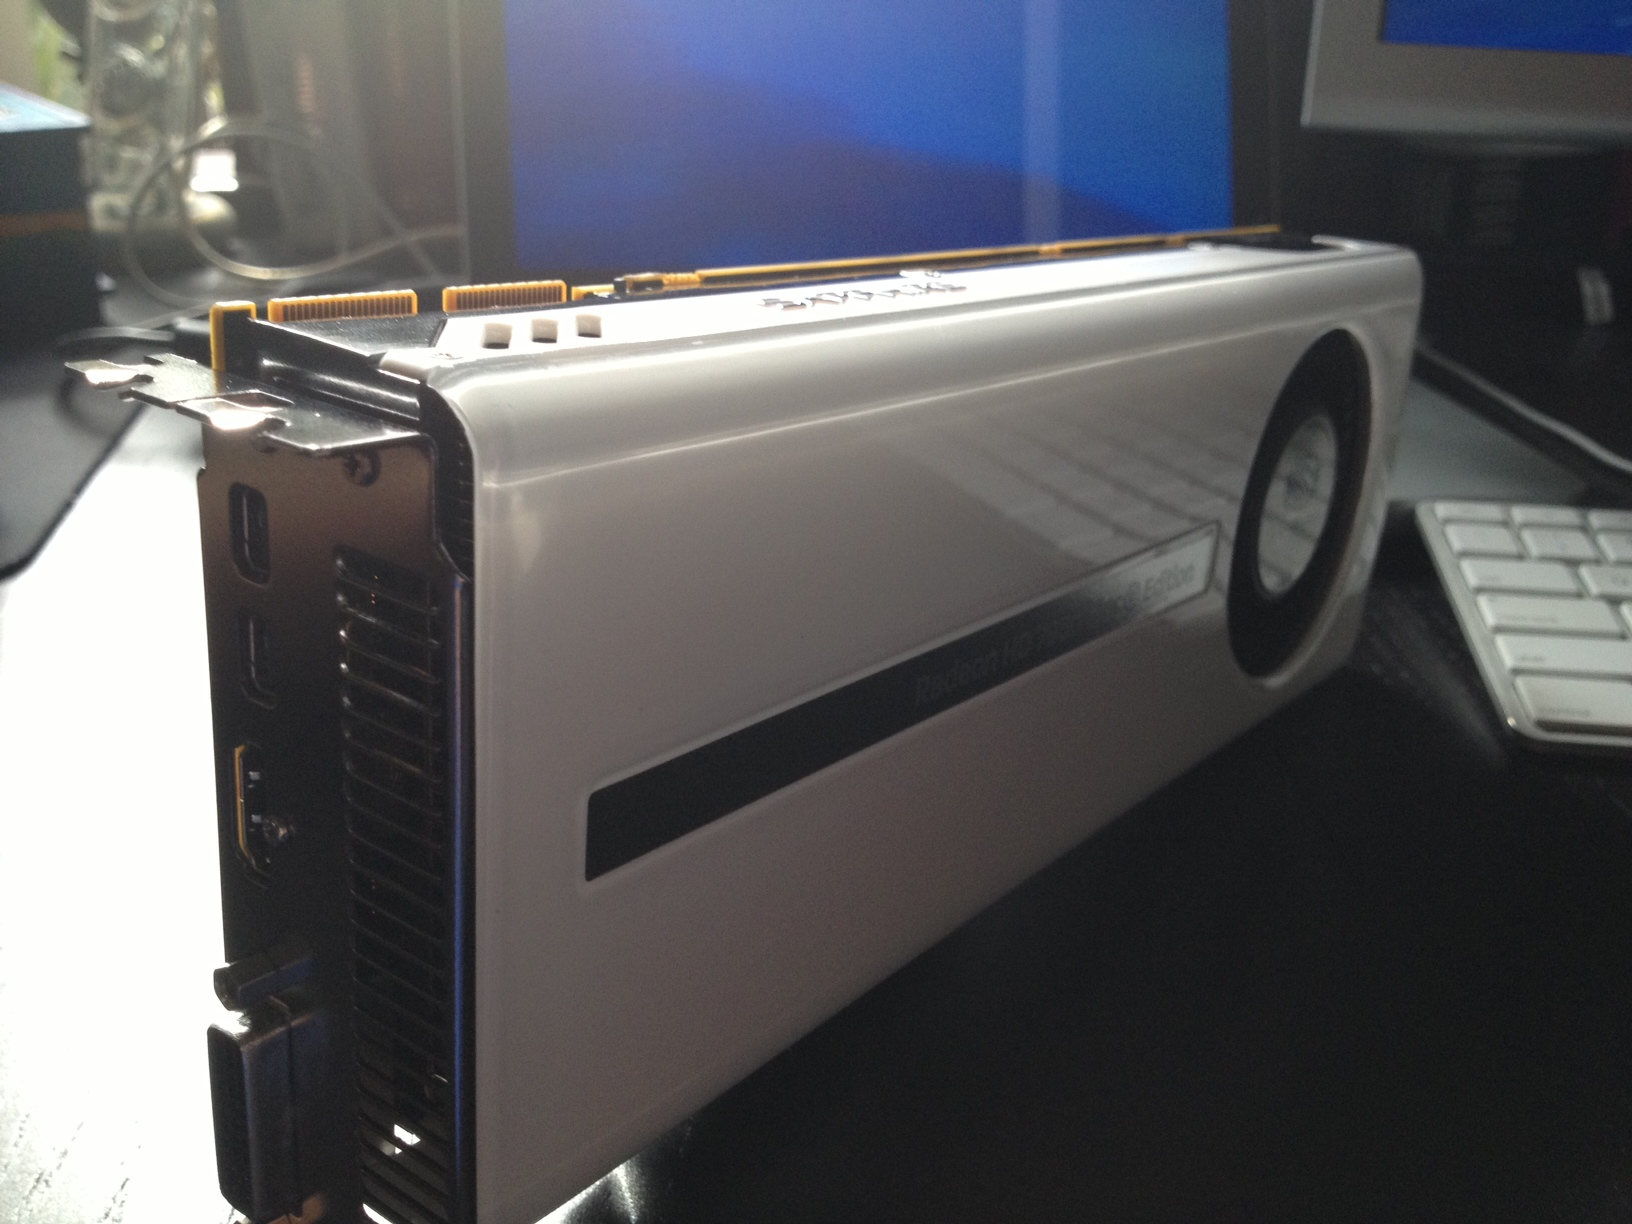 Product Review: AMD Sapphire HD 7950 Mac Edition | Architosh